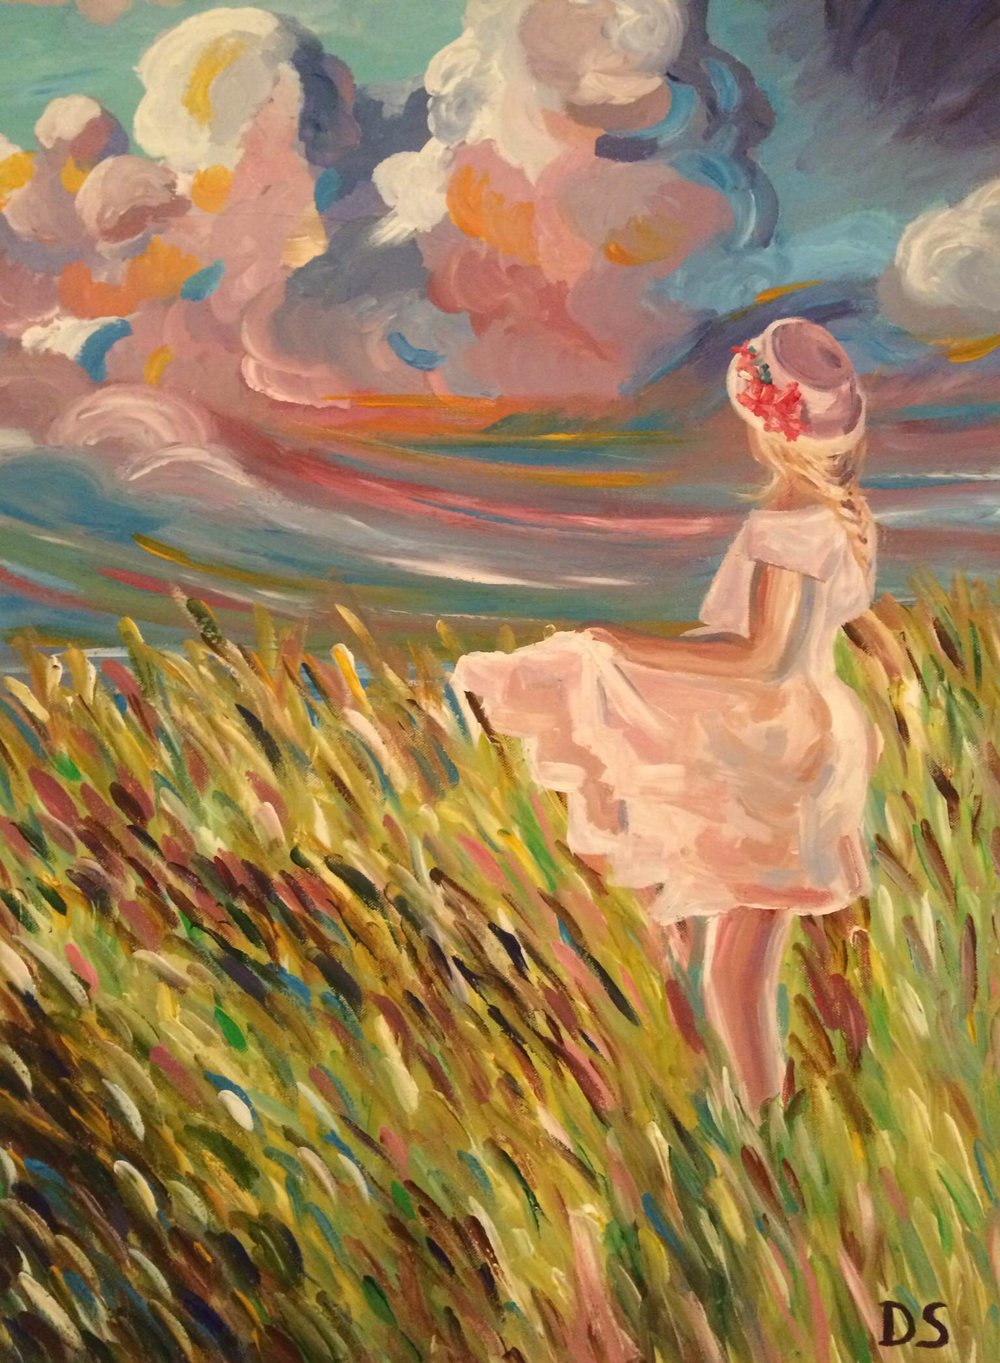 6.-We-Love-Art-Denise-Schmitz-Painting-Girl-in-Field.jpg